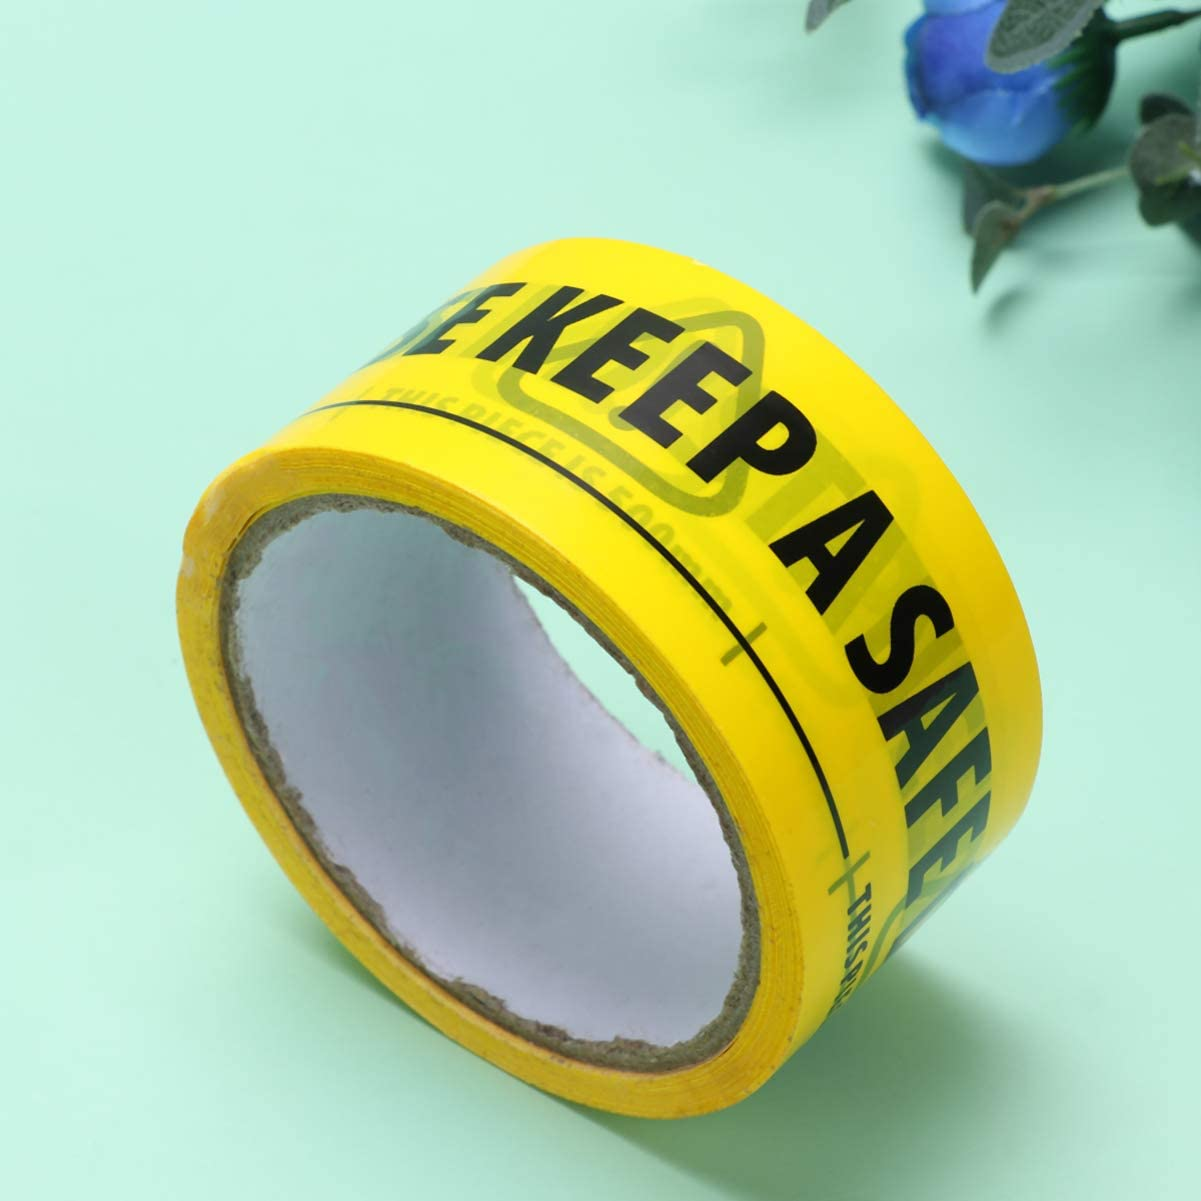 EXCEART Yellow Social Distancing Stickers Tape Roll Please Keep A Safe Distance of 2 Meters Warning Caution Tape Floor Warning Sticker for Construction Hazard